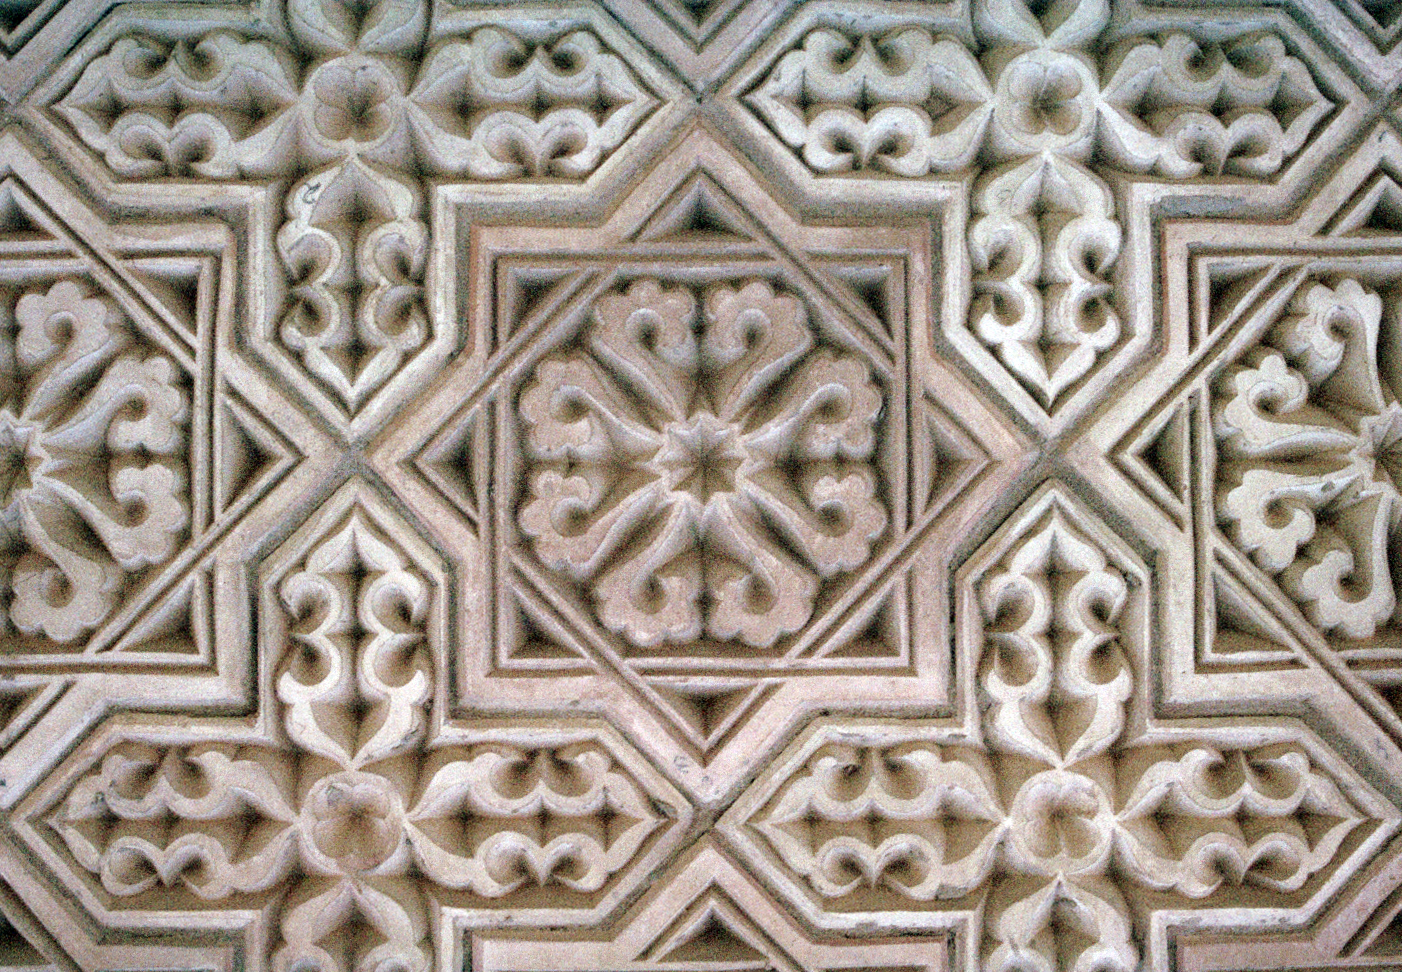 English: Aisha Bibi Tile Detail